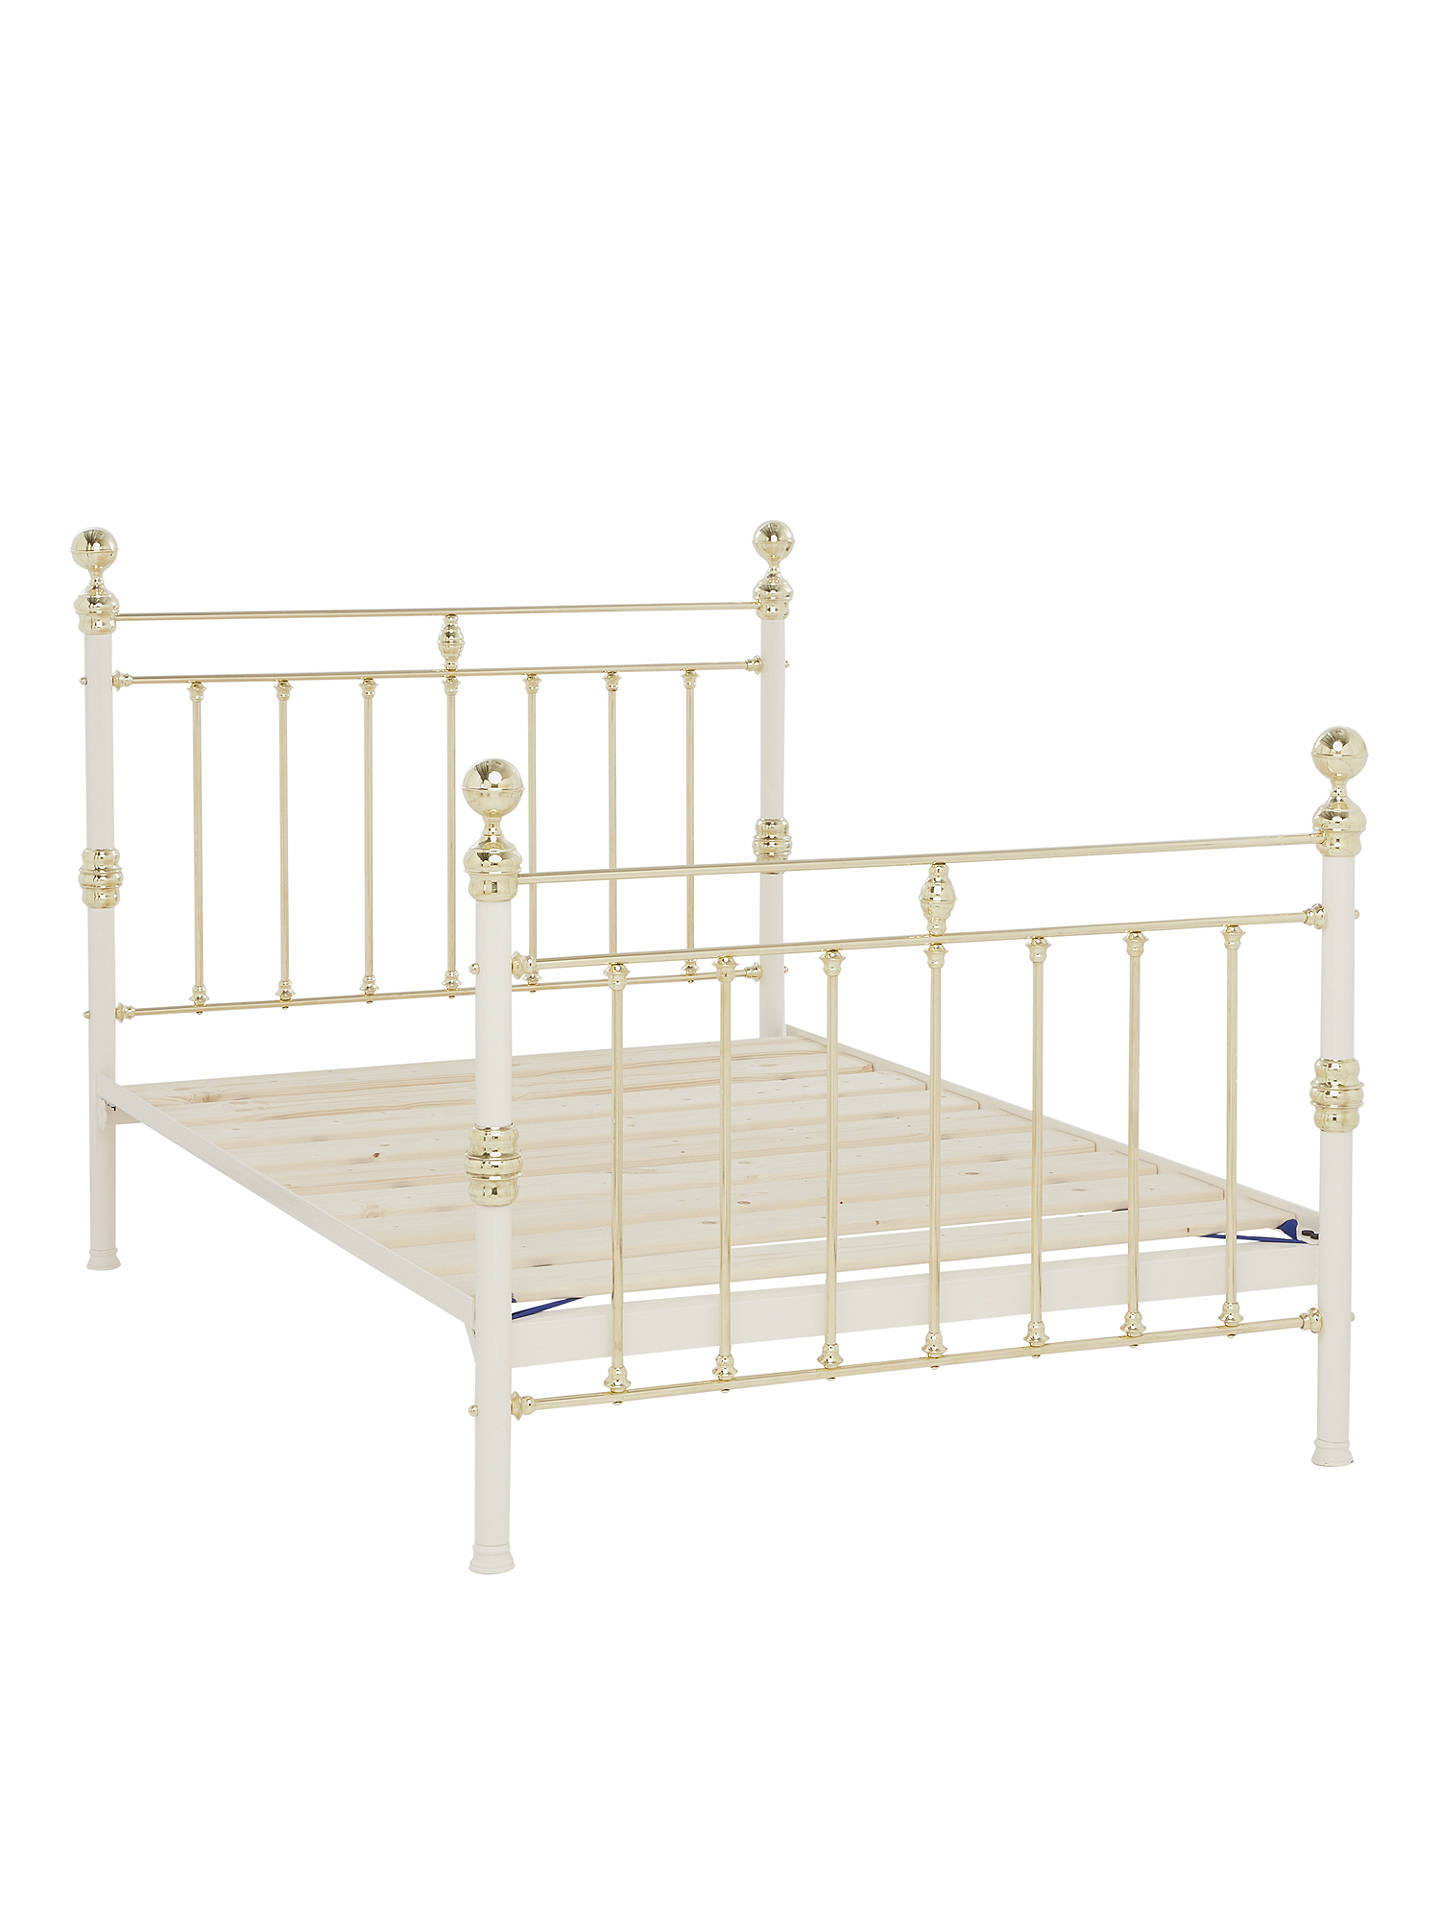 Wrought Iron And Brass Bed Co George Bed Frame Super King Size